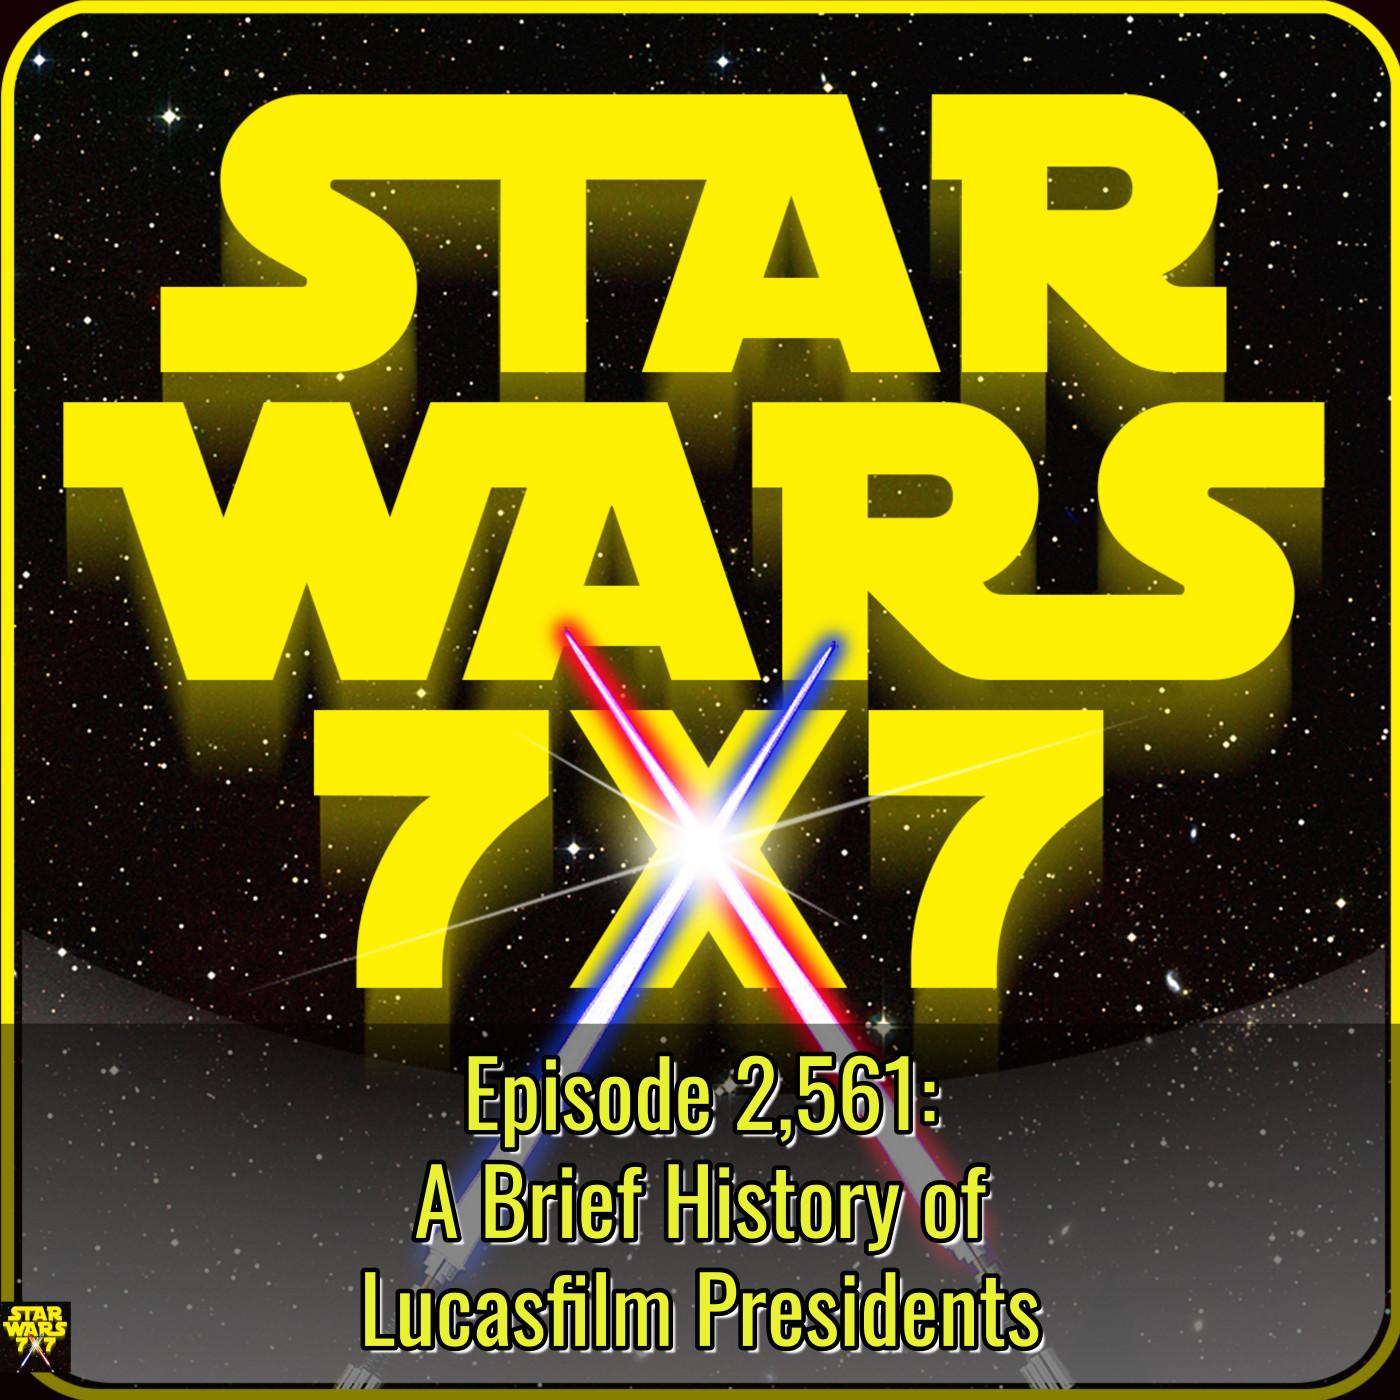 2,561. A Brief History of Lucasfilm Presidents